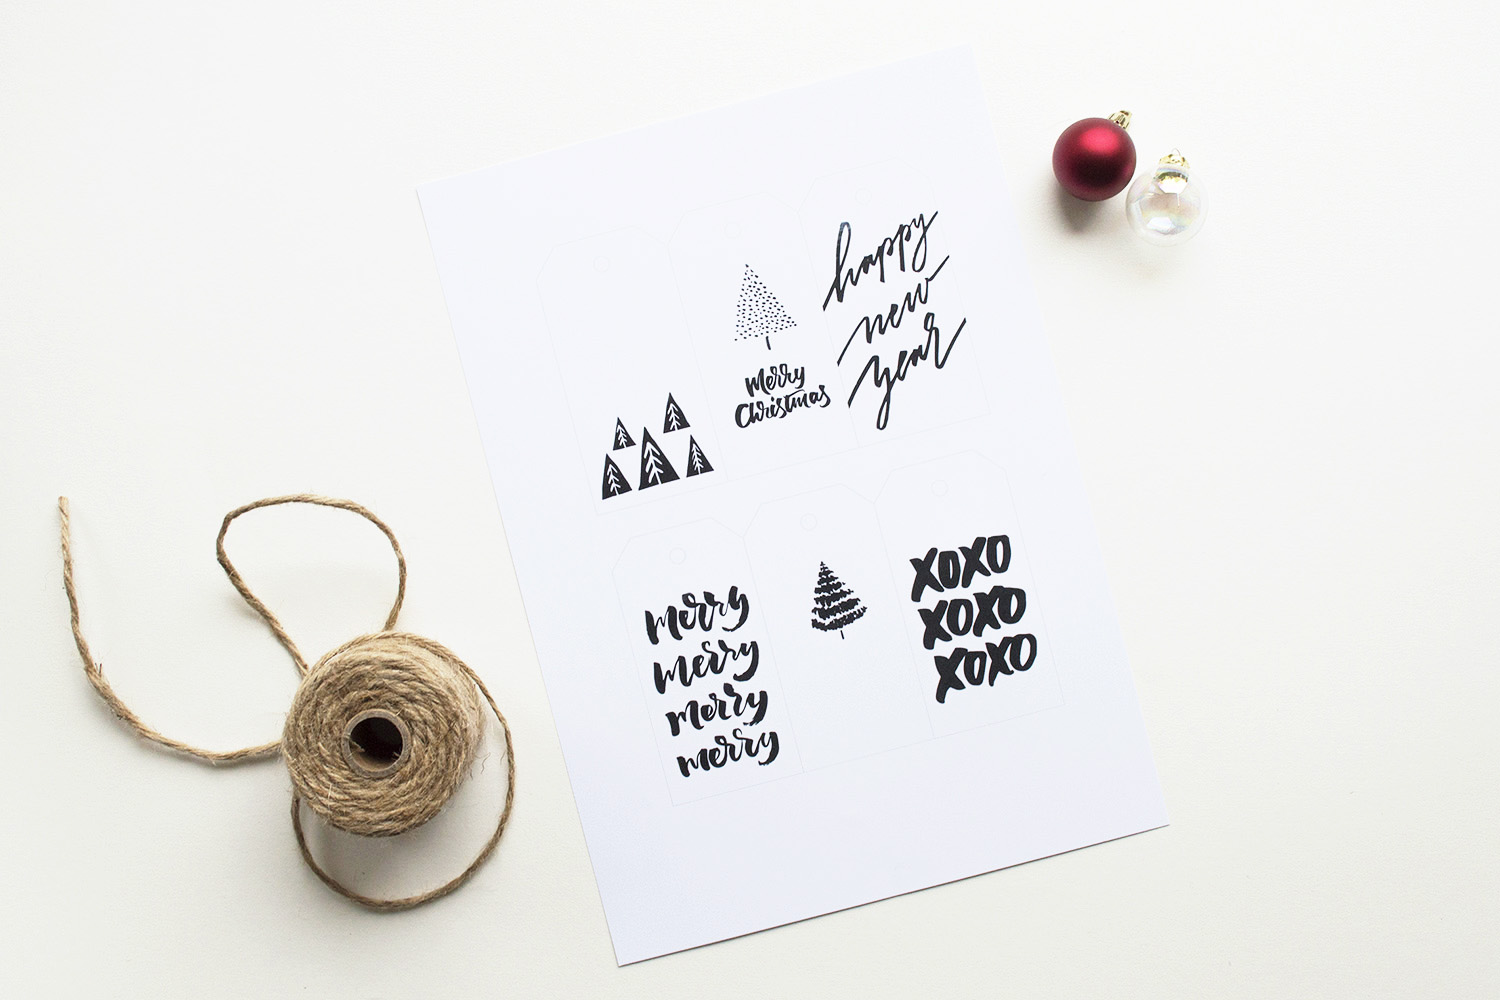 Download free printable Christmas Tags by Type and Graphics Lab | For personal use only | ©typeandgraphicslab.com